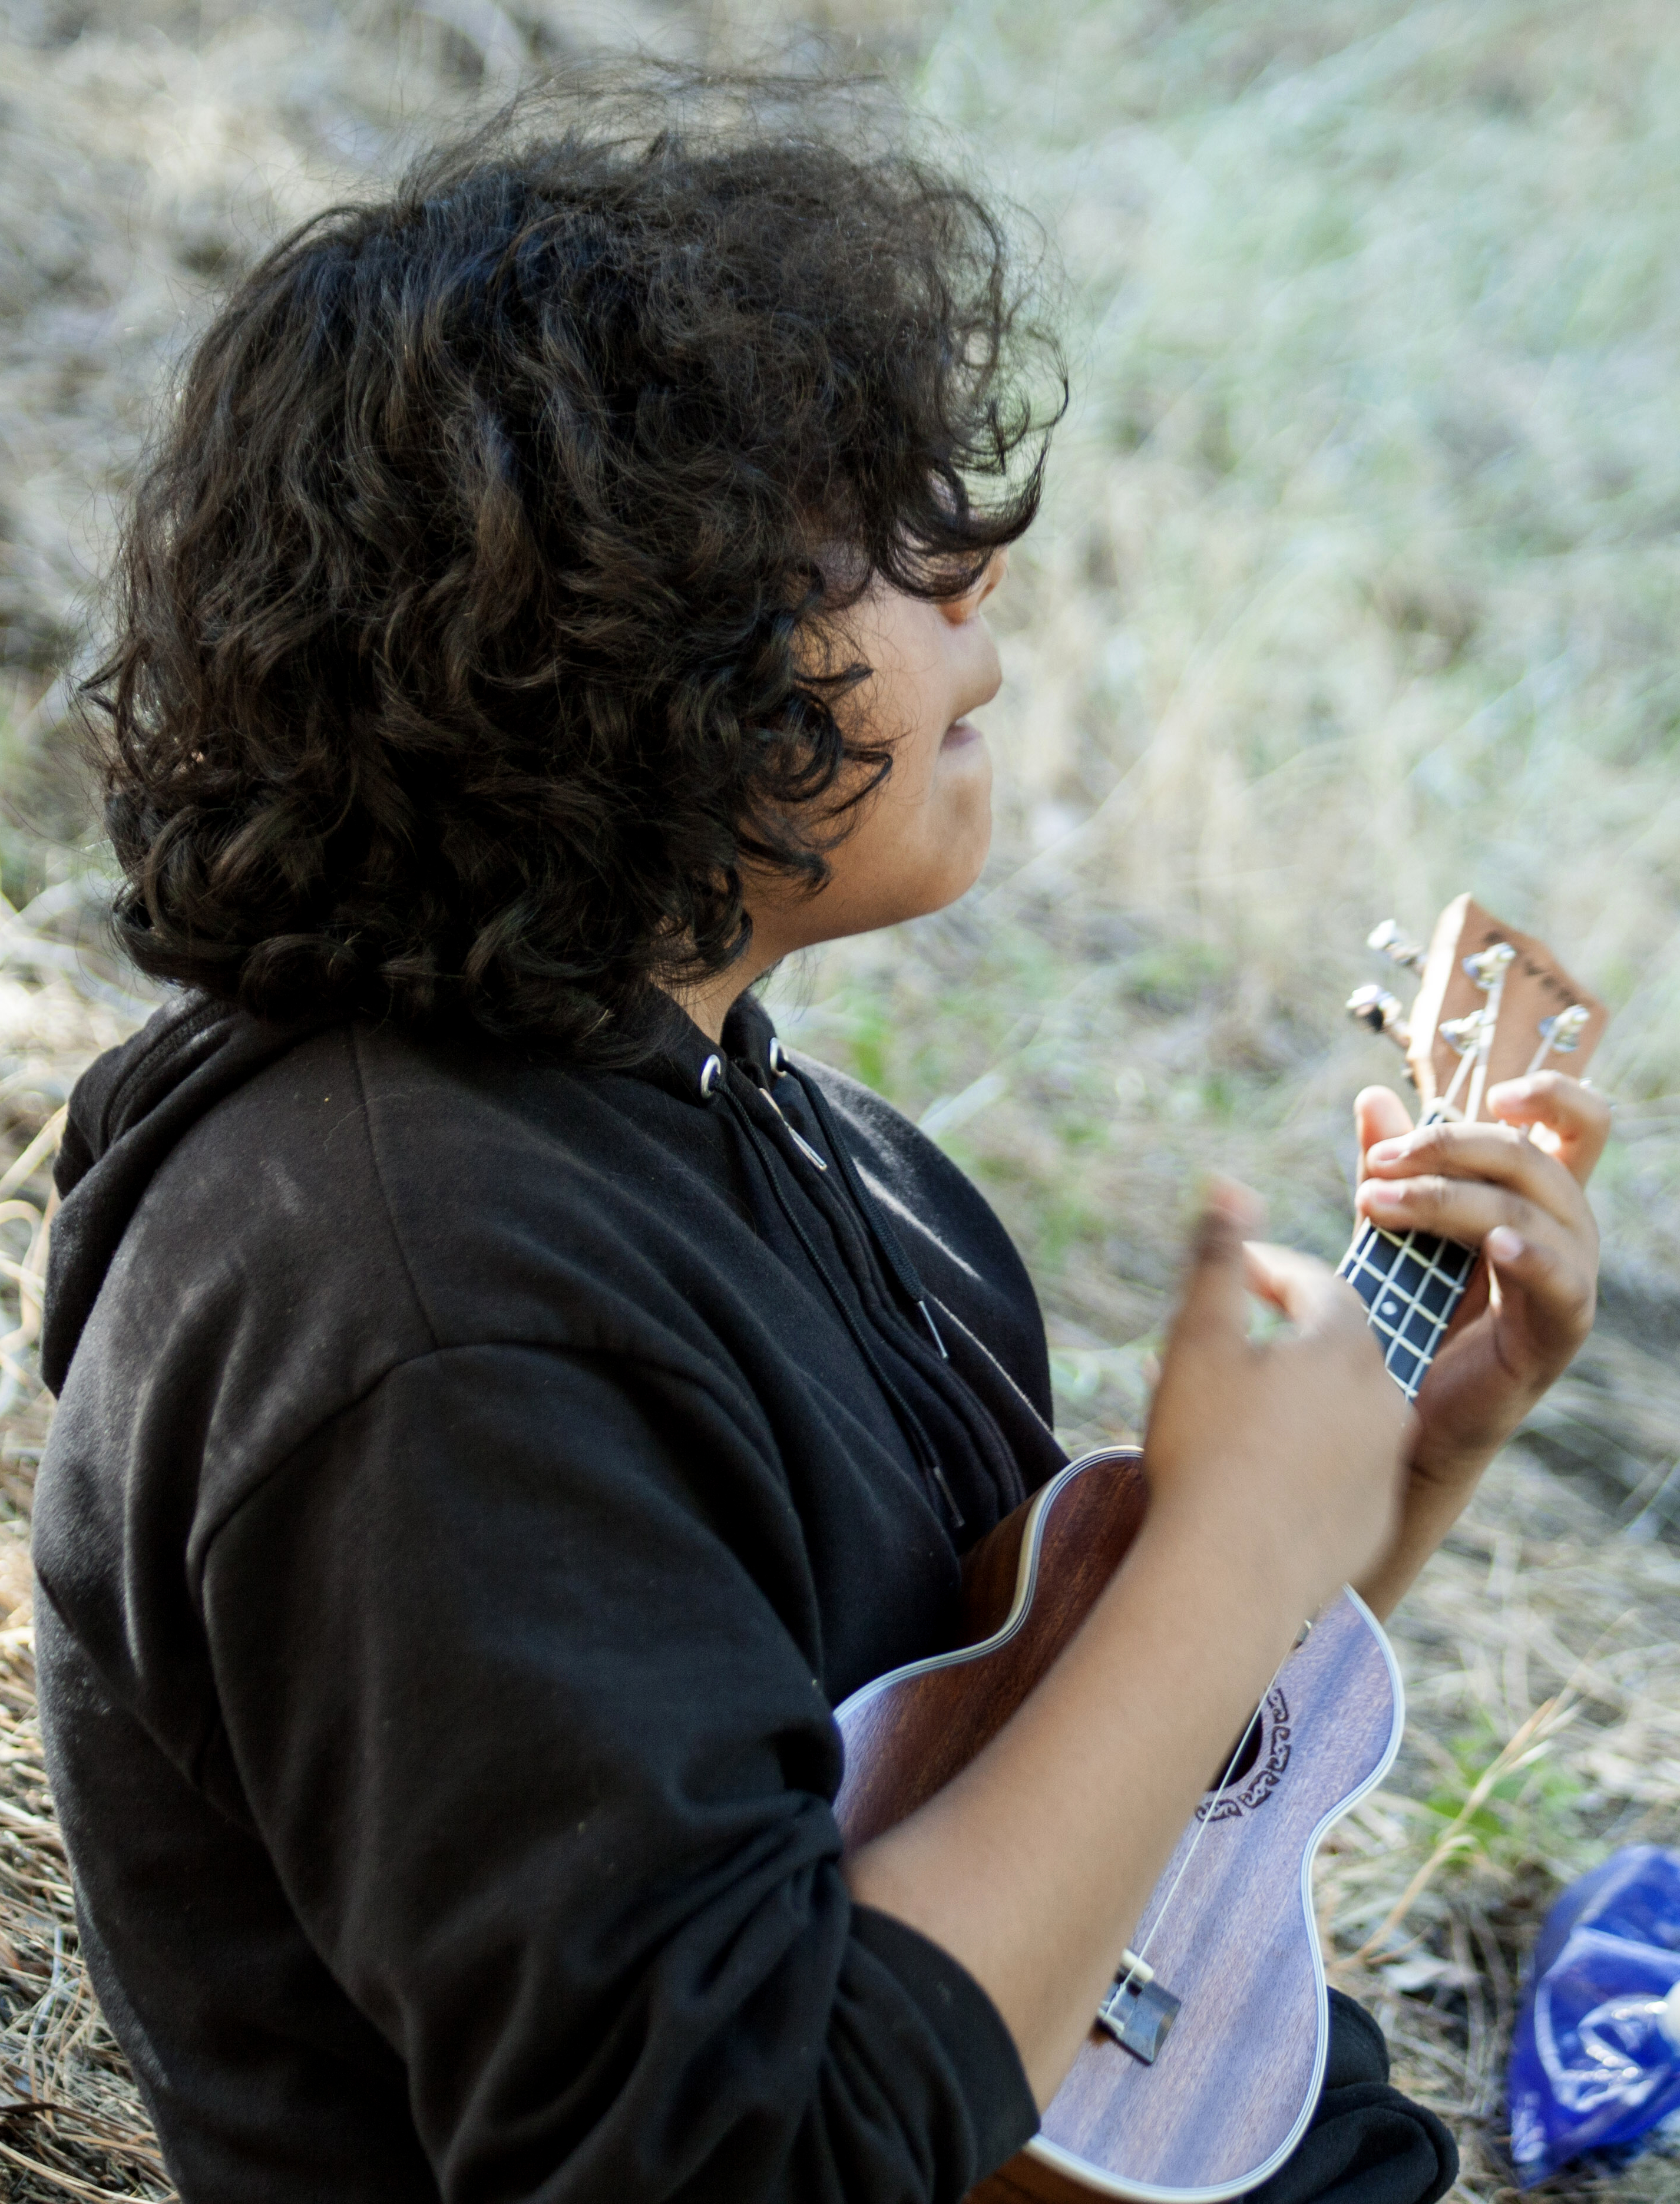 A young boy plays ukele at United Methodist Camp Colby. Photo courtesy of California-Pacific Conference.